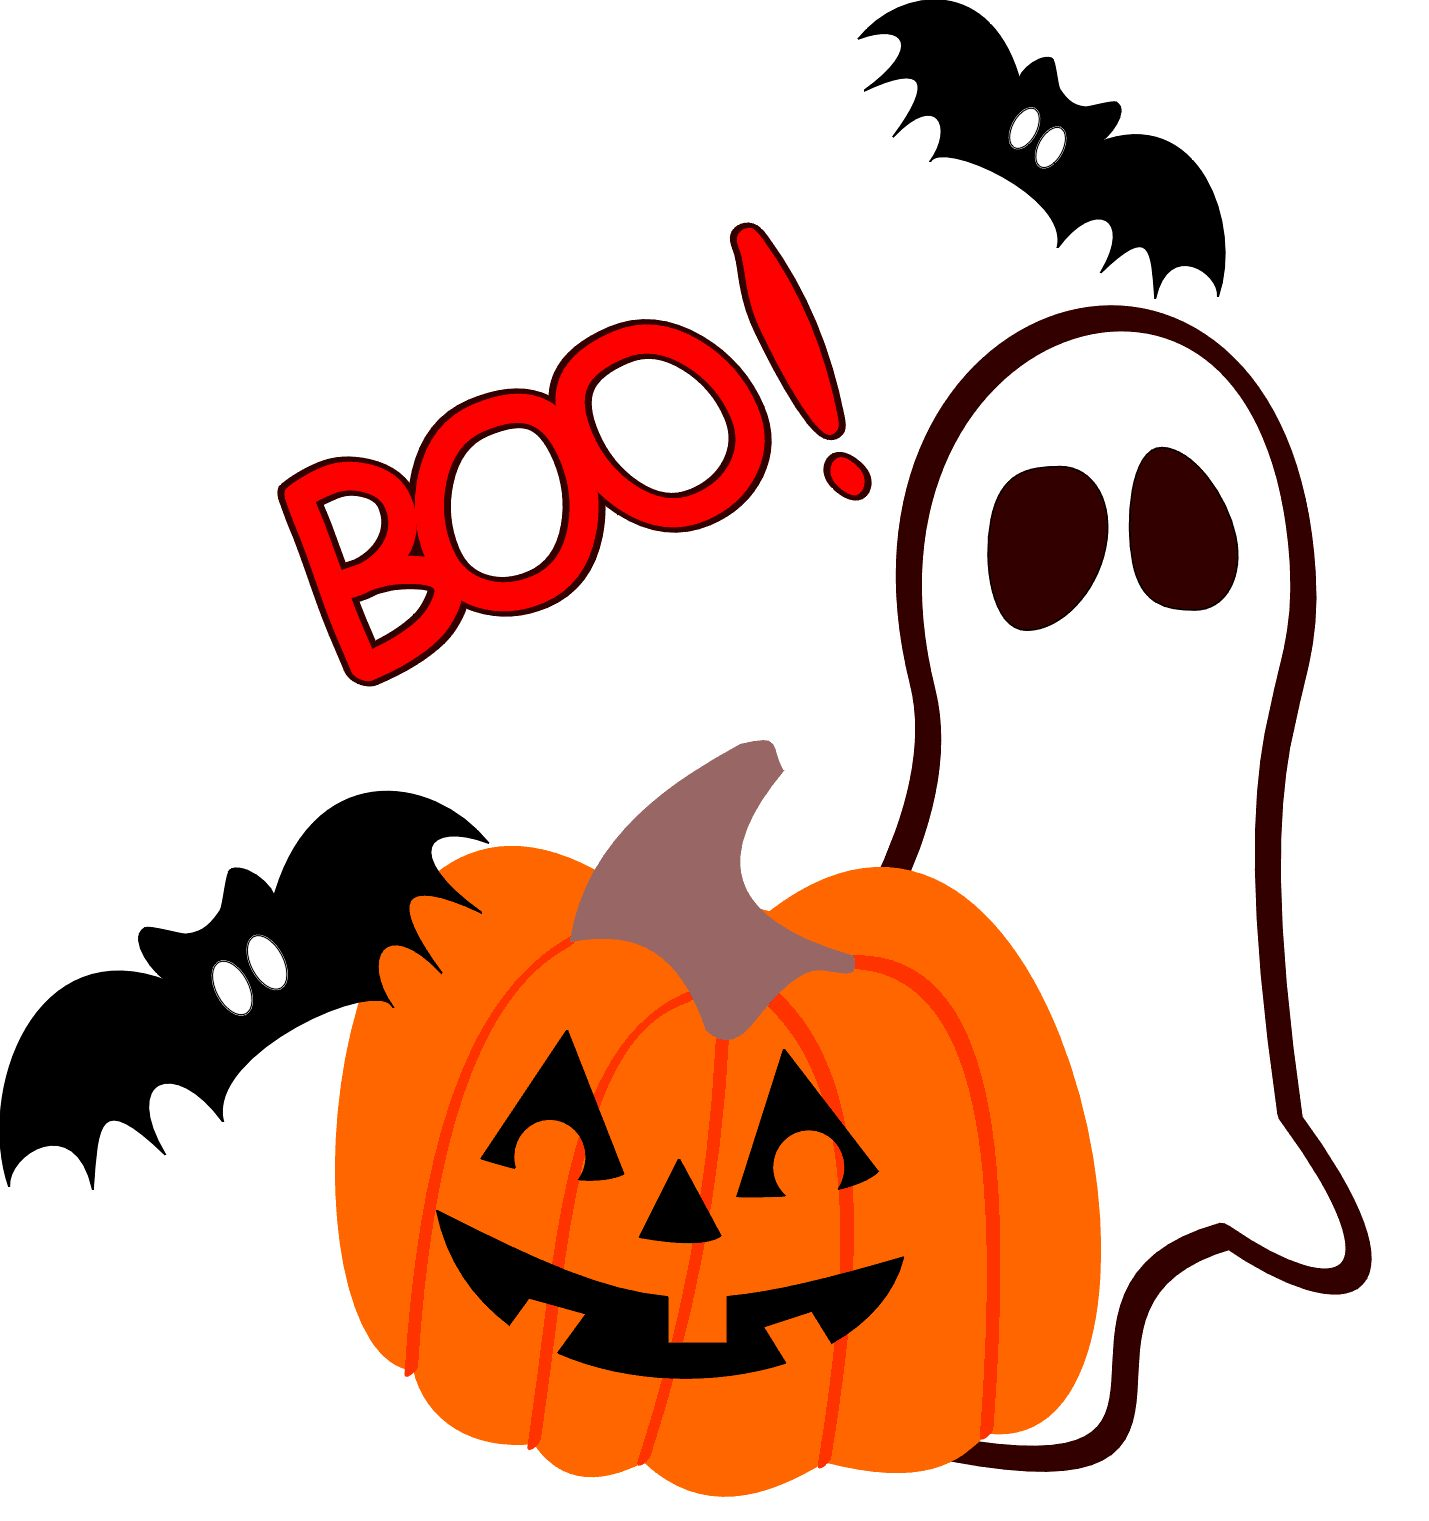 Halloween clipart for facebook picture library stock Halloween clipart for facebook - ClipartFox picture library stock